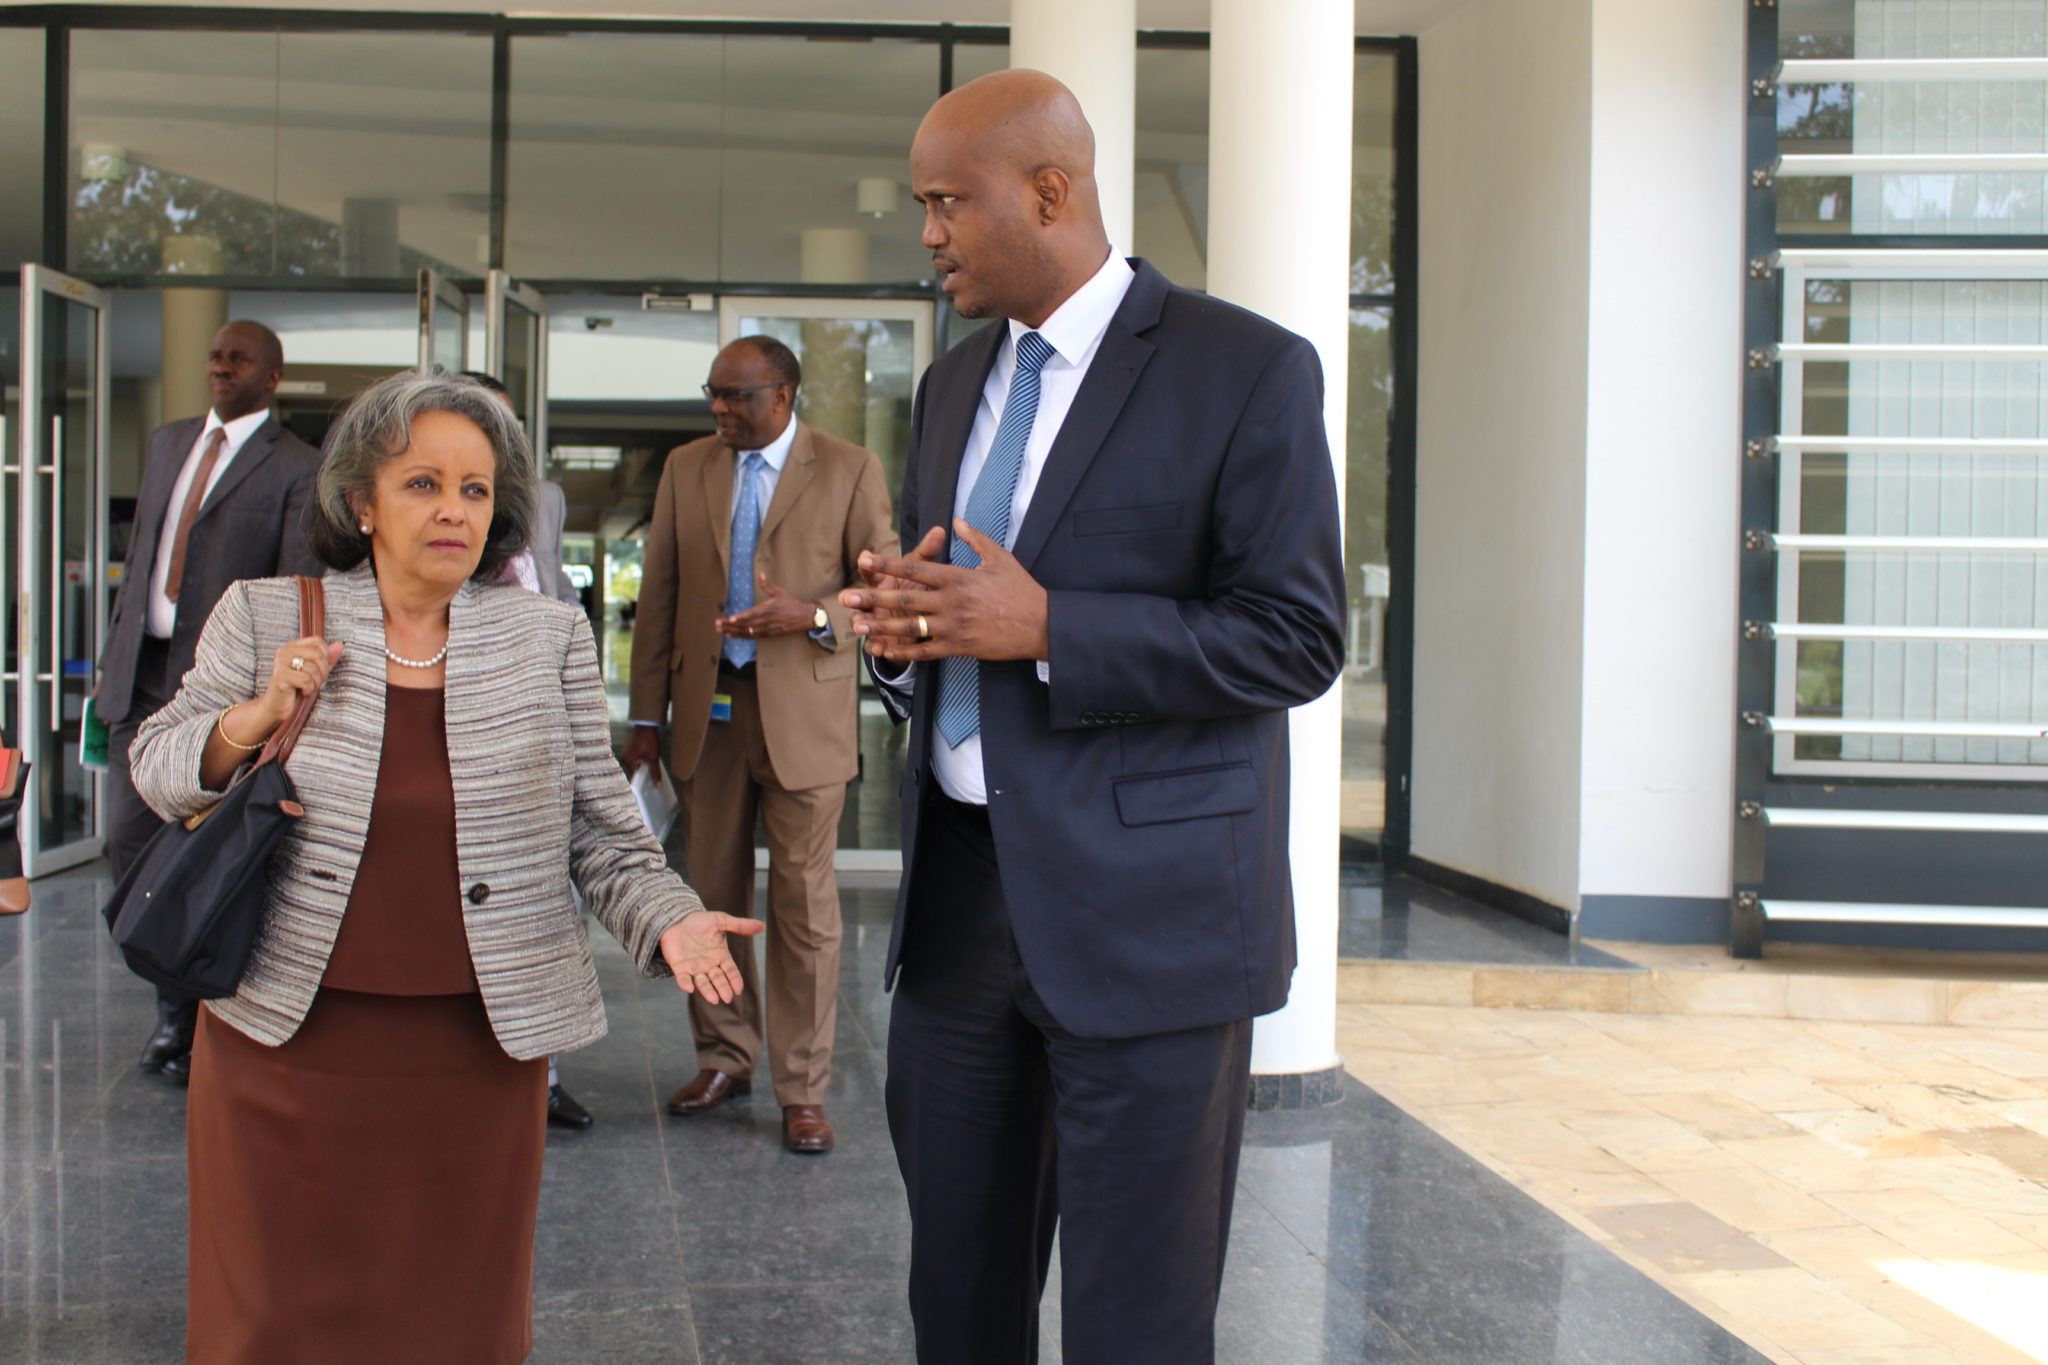 EAC Secretary General Amb. Liberat Mfumukeko with H.E. Sahle-Work Zewde, the Director General of the UN Office in Nairobi outside the EAC Headquarters in Arusha, Tanzania today.